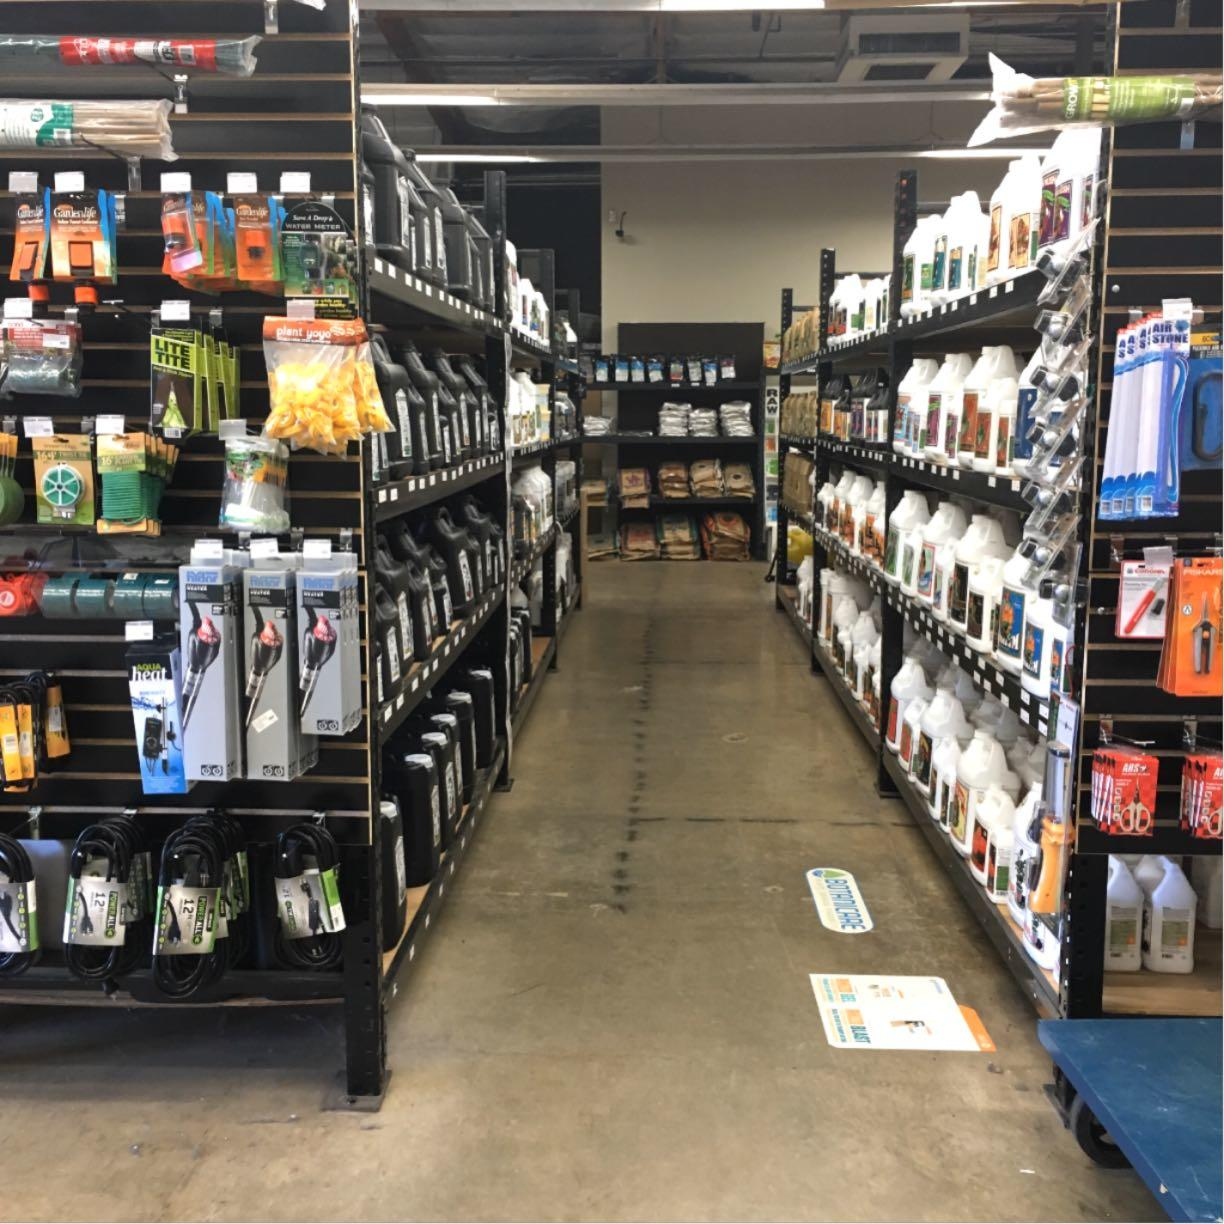 Grower Supply House image 54